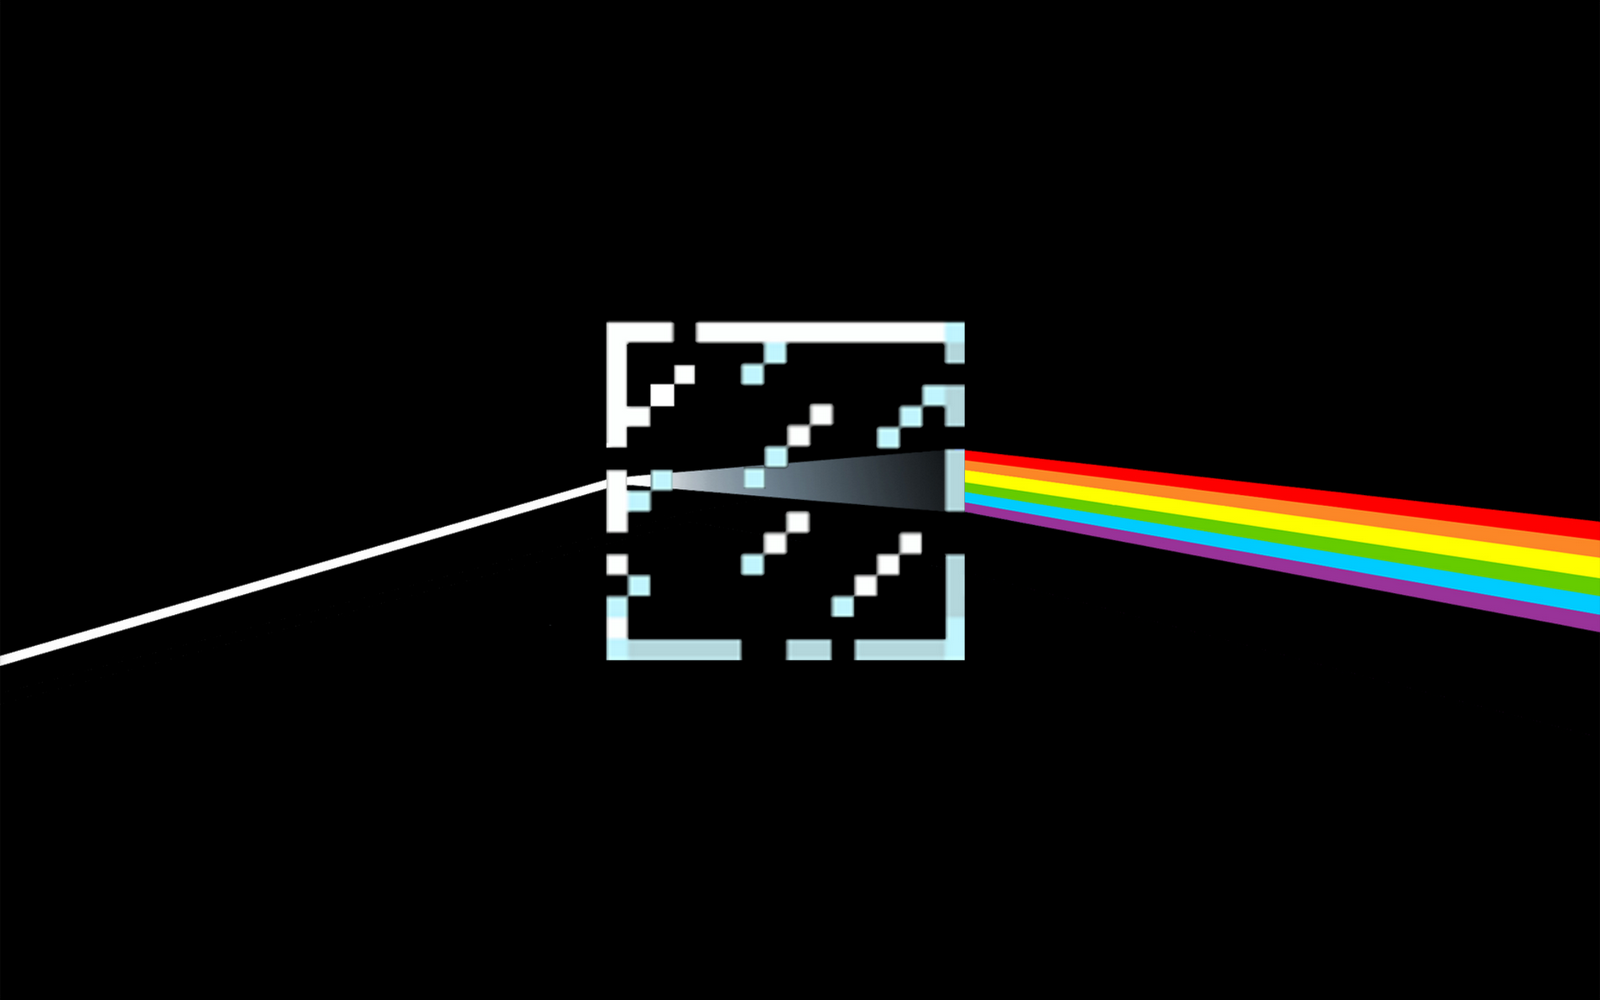 http://4.bp.blogspot.com/-f0pjQmjjdZ4/UBdhWEokyOI/AAAAAAAAIvc/pVxLISXk7Fg/s1600/Minecraft-Pink-Floyd-The-Dark-Side-Of-The-Moon-wallpaper.png